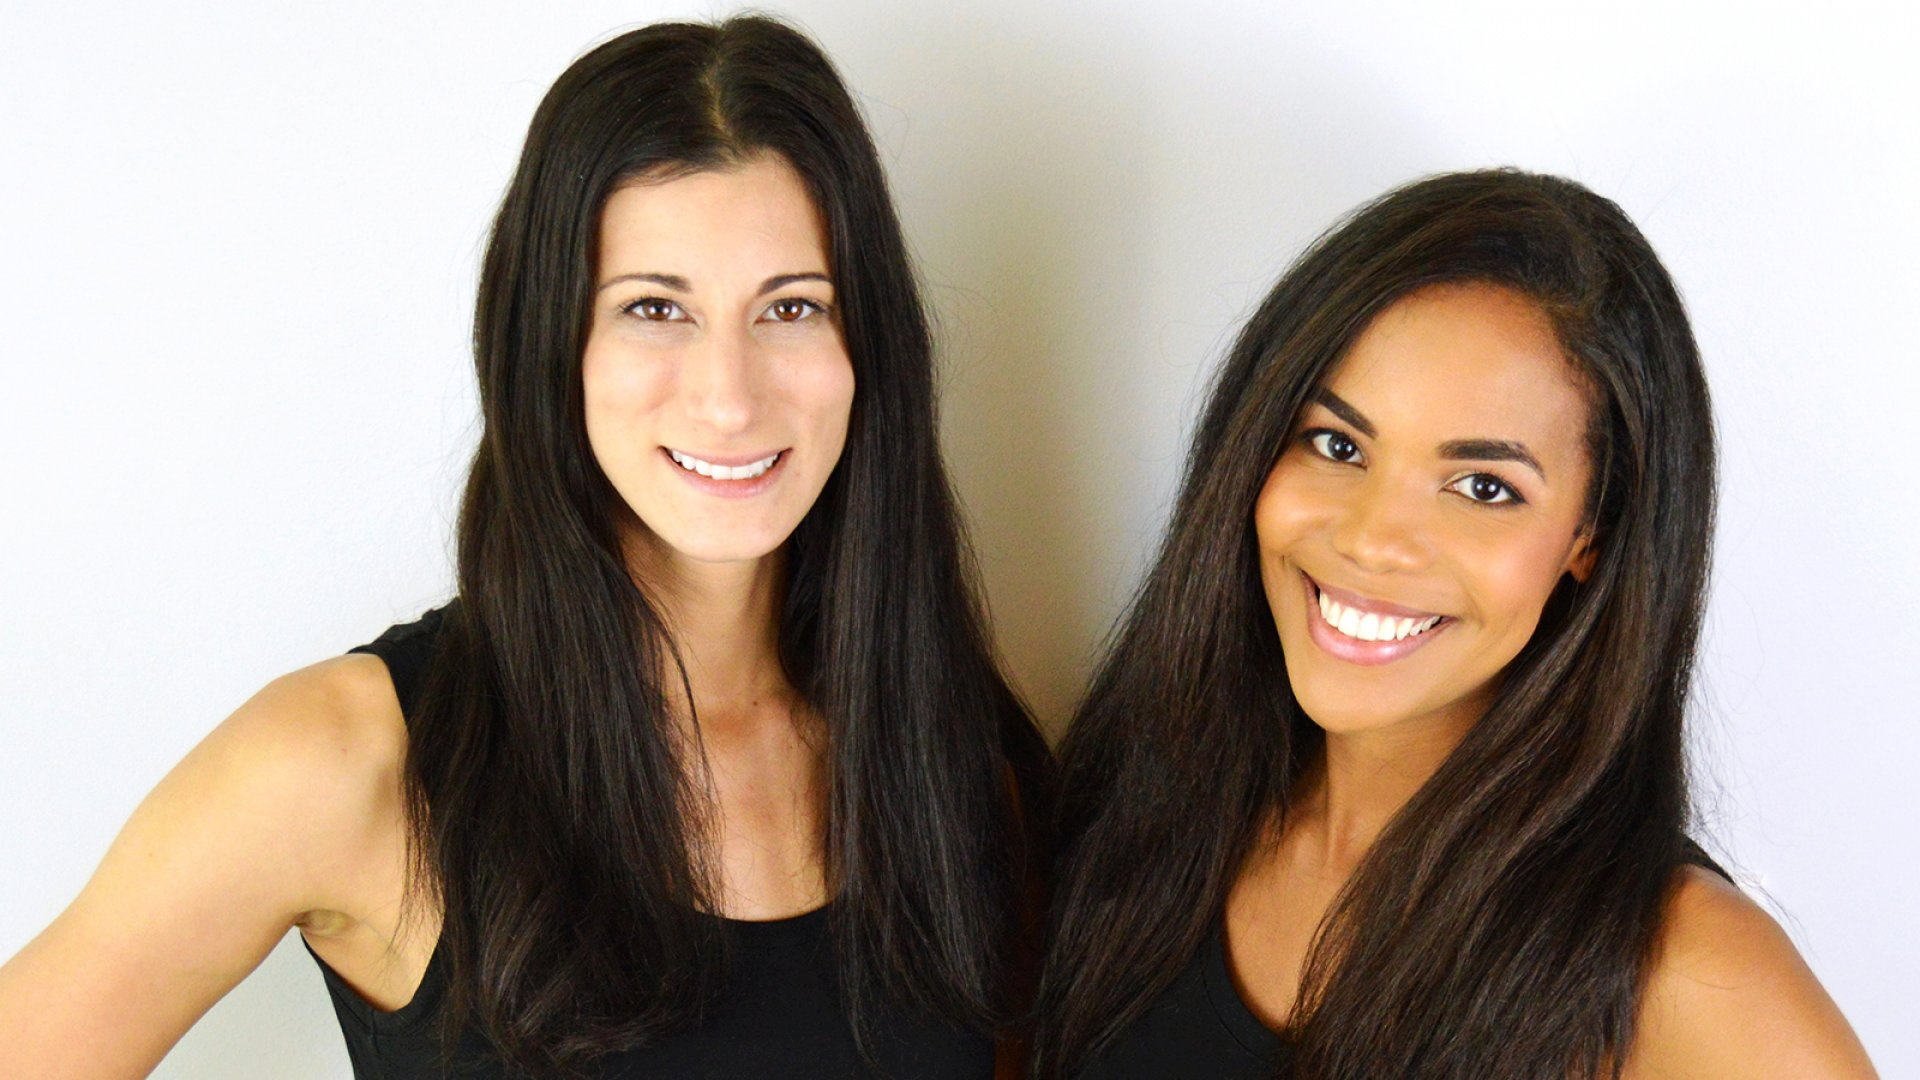 Jess Edelstein (left) and Sarah Ribner of PiperWai.